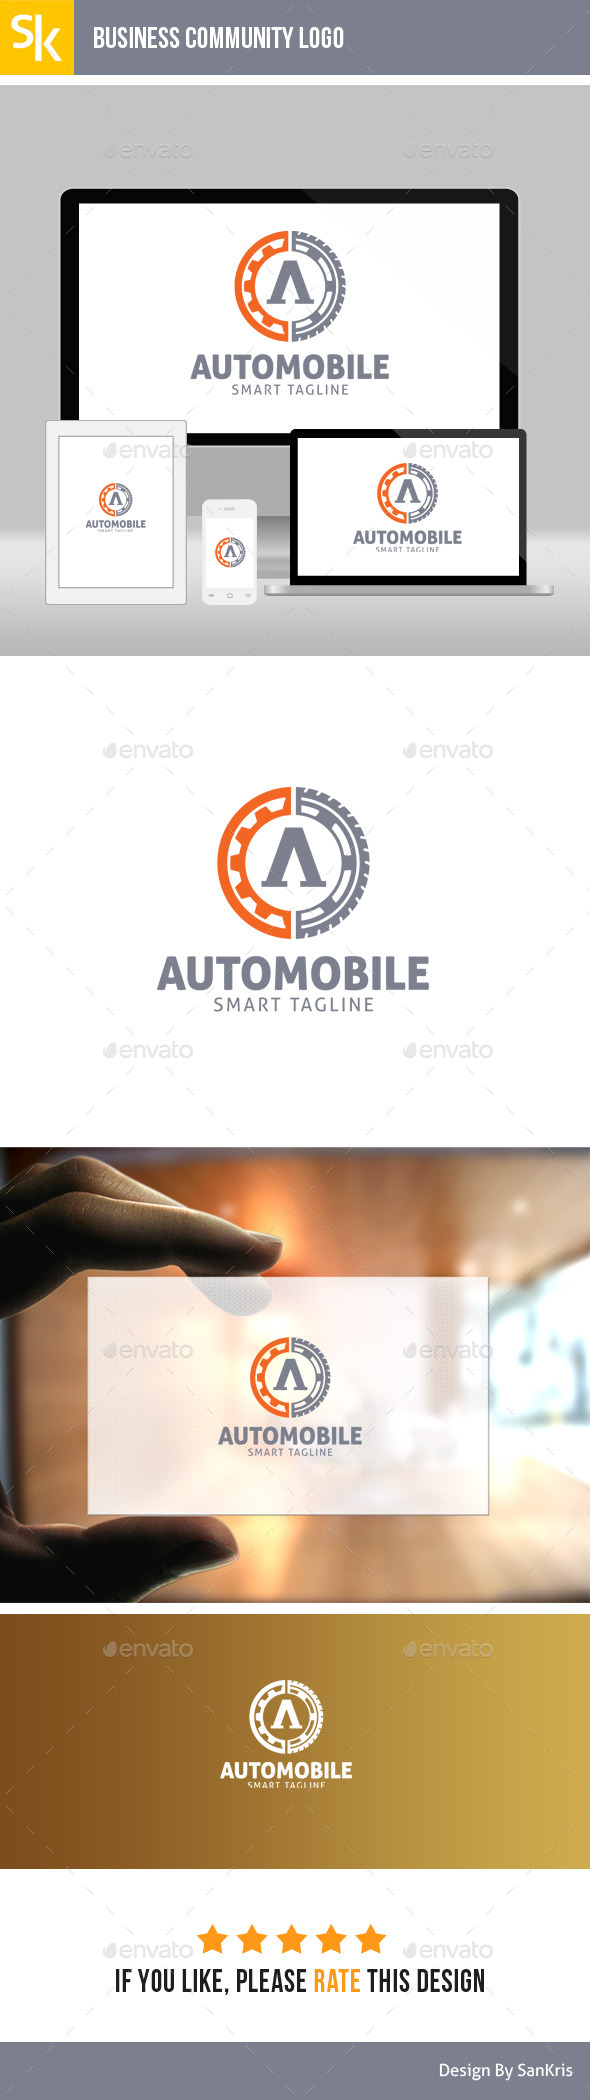 Automobile Logo - Abstract Logo Templates